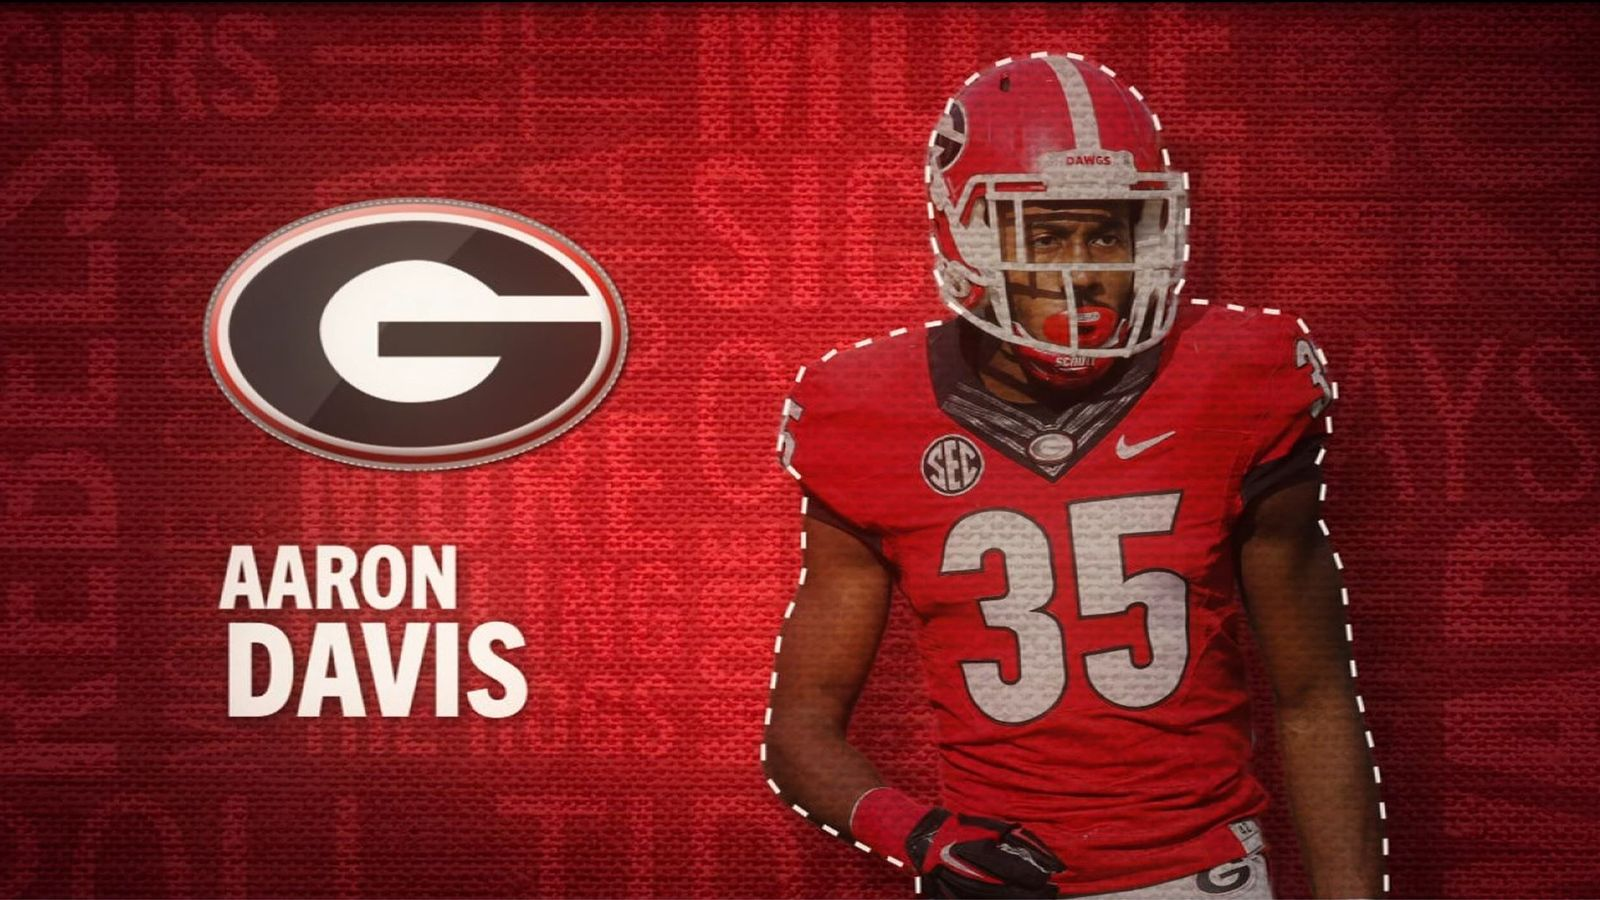 I am the SEC: Georgia's Aaron Davis